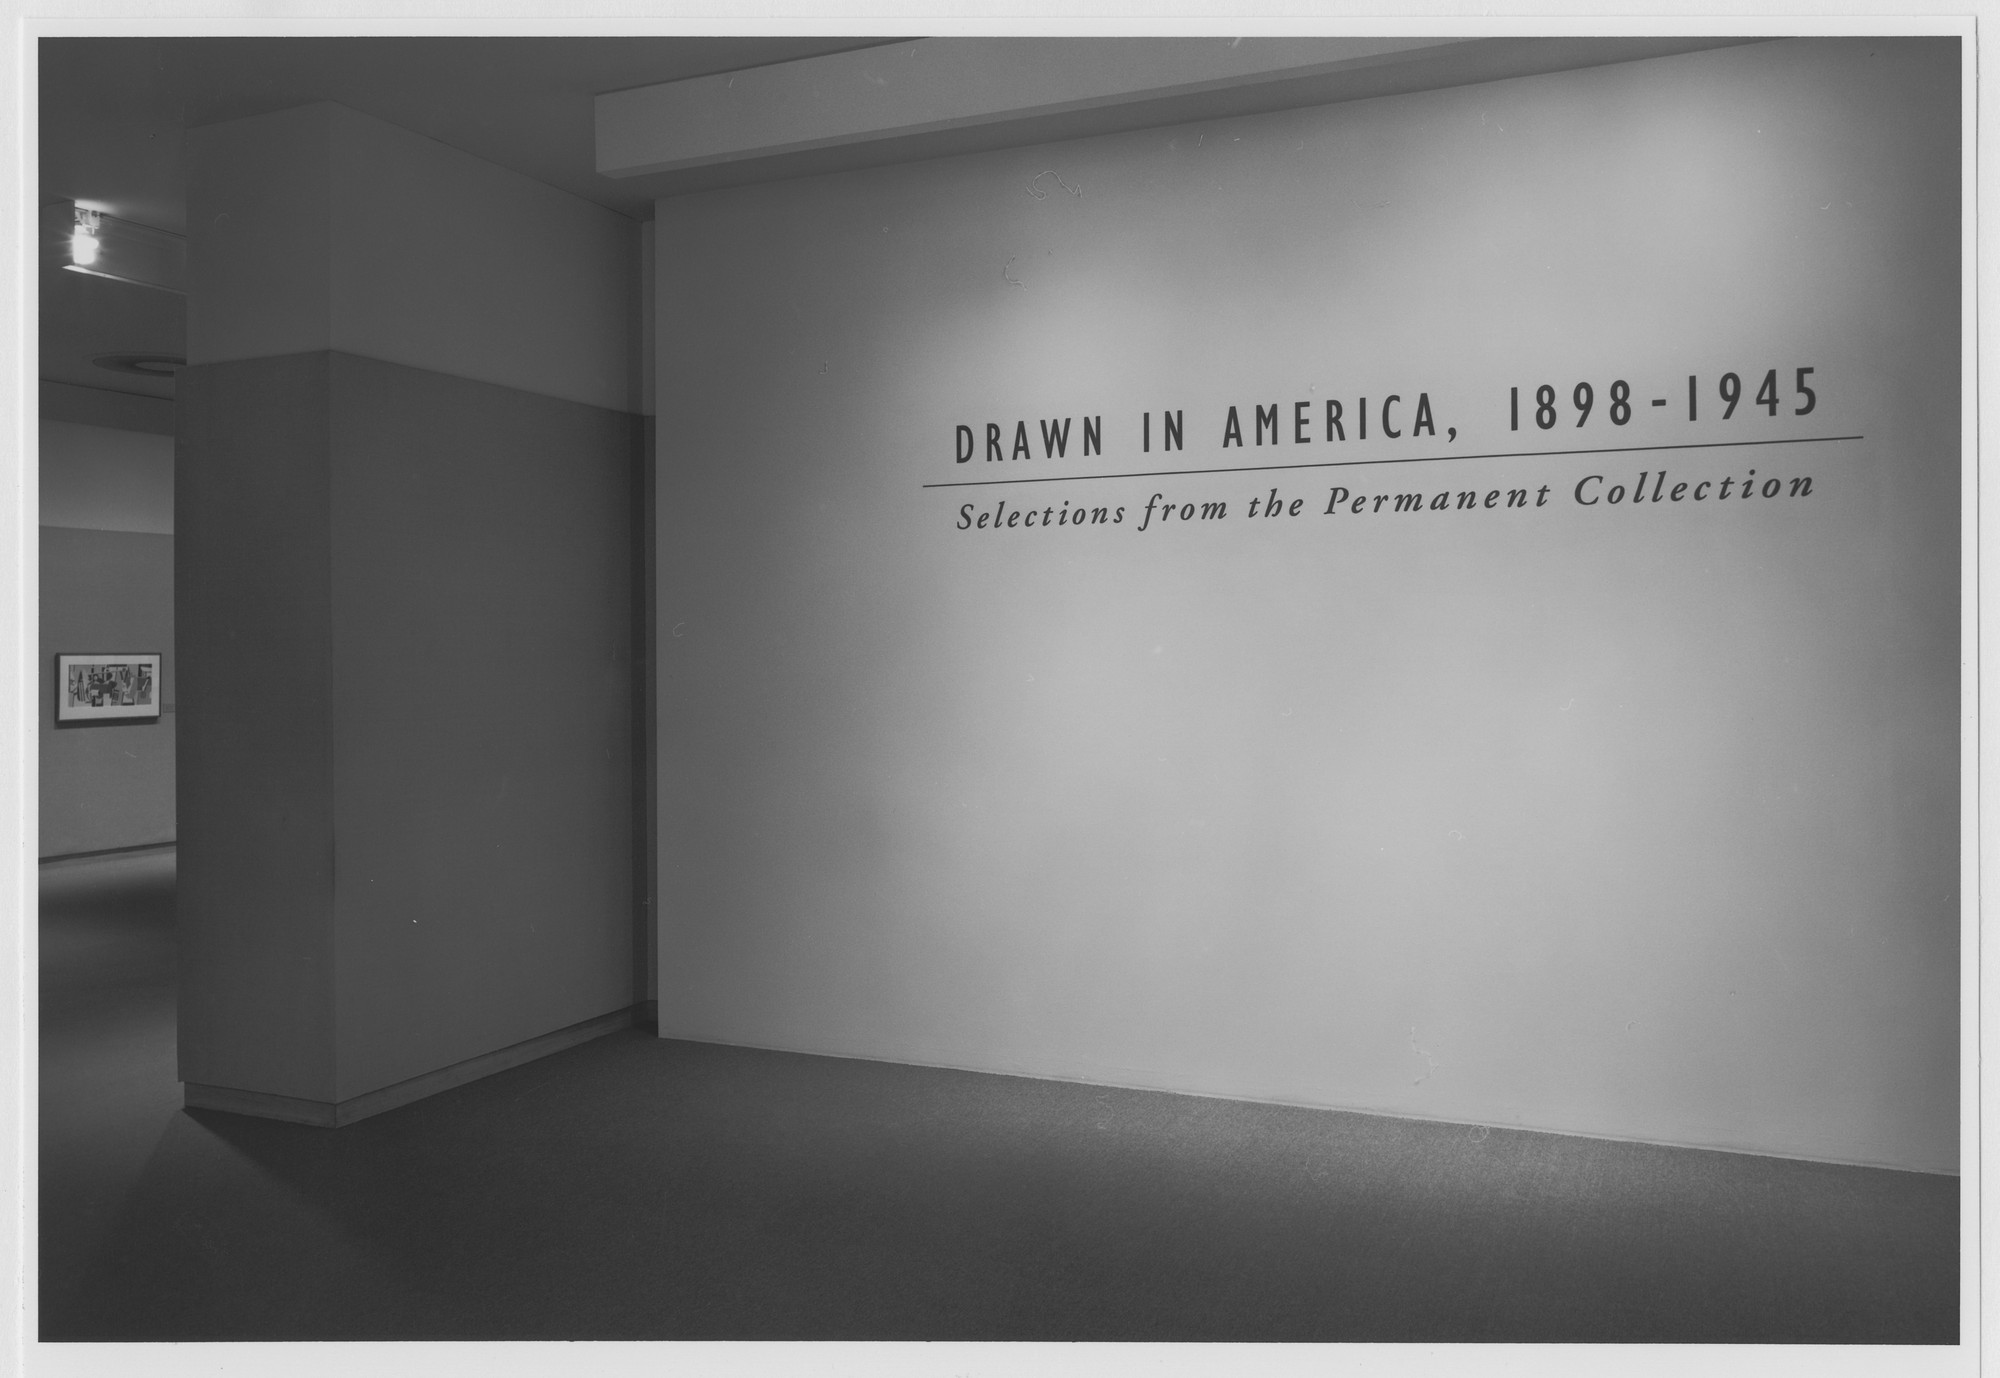 "Installation view of the exhibition, ""Drawn in America, 1898-1945"" November 1, 1990–March 1991. Photographic Archive. The Museum of Modern Art Archives, New York. IN1563.1. Photograph by Mali Olatunji."